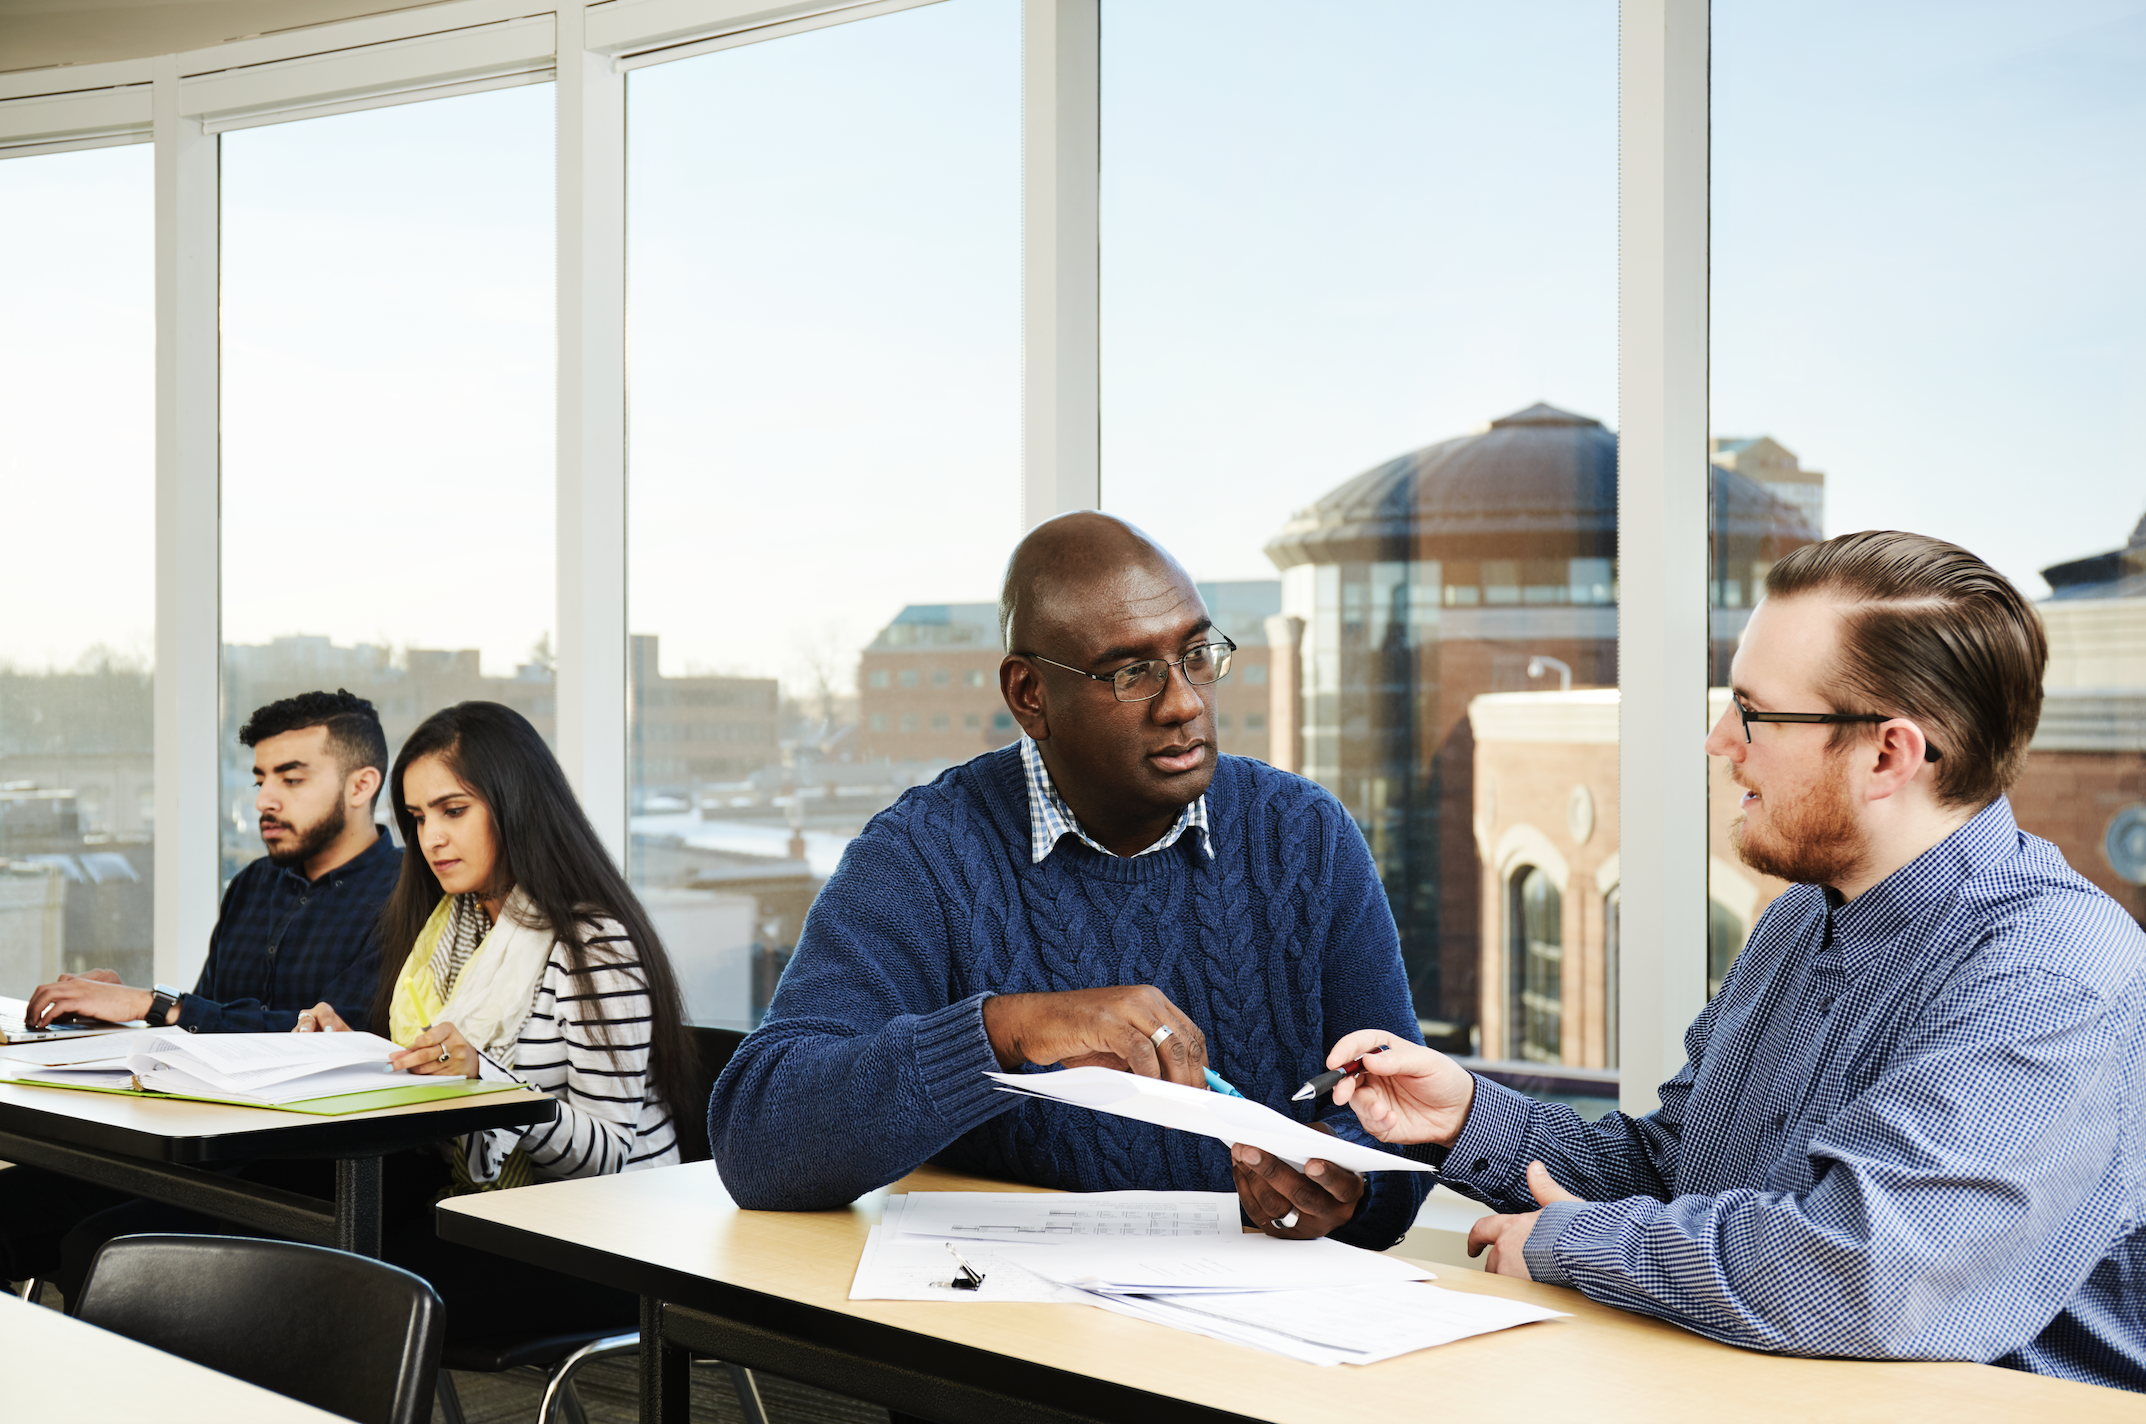 students in class discussing with faculty